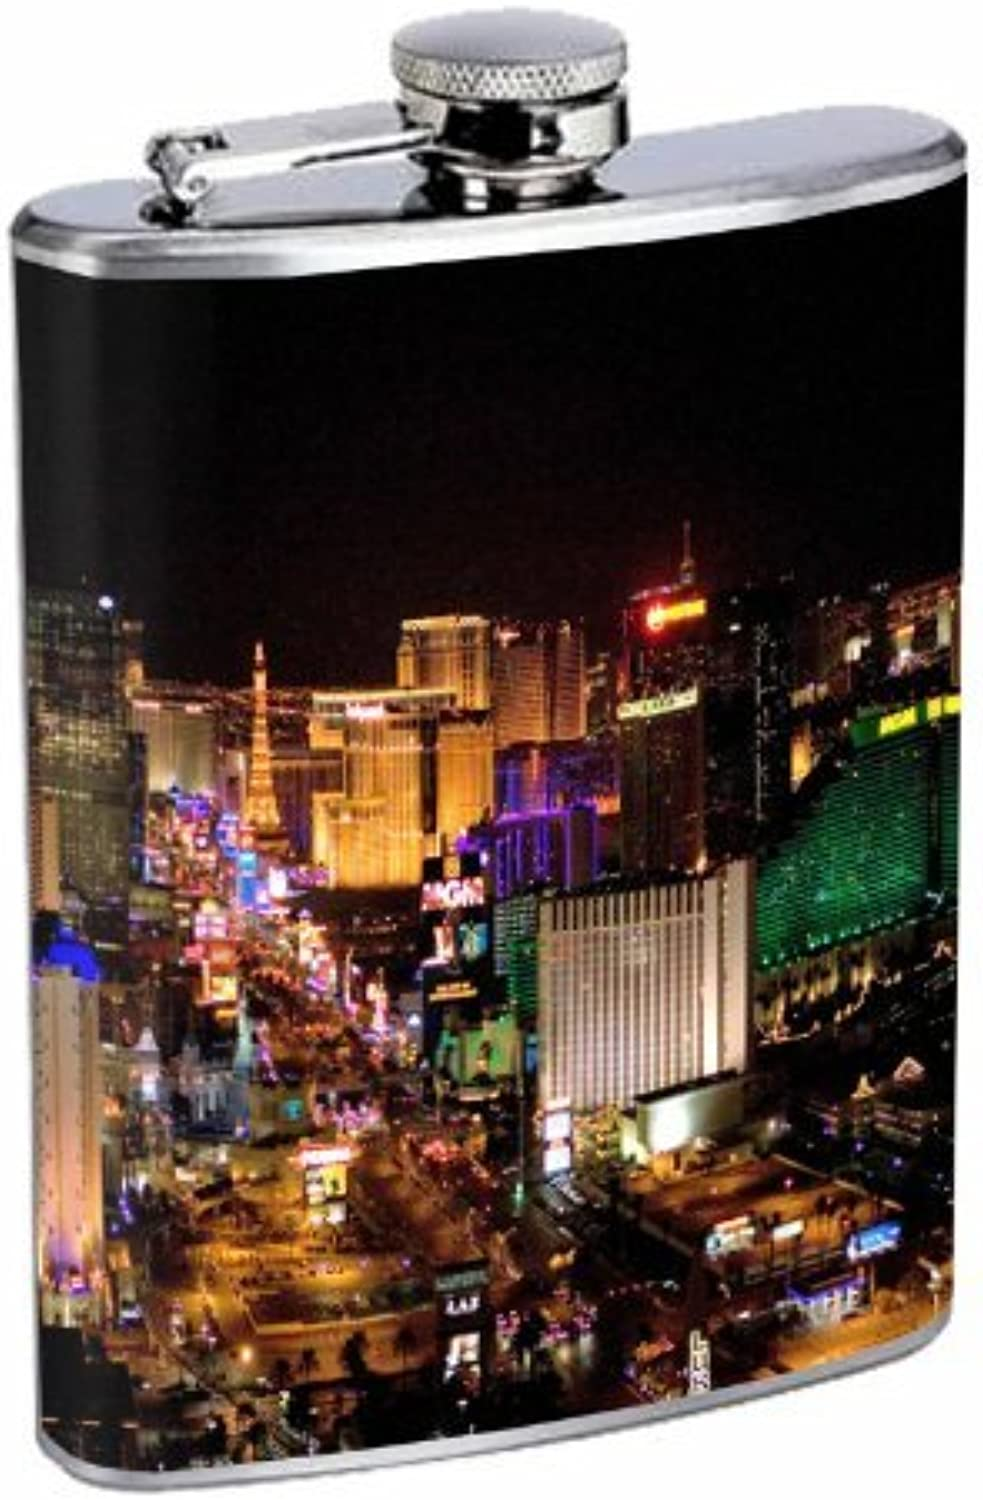 la red entera más baja Flask 8oz Stainless Stainless Stainless Steel Las Vegas Design-003 by Perfection In Style  Con 100% de calidad y servicio de% 100.